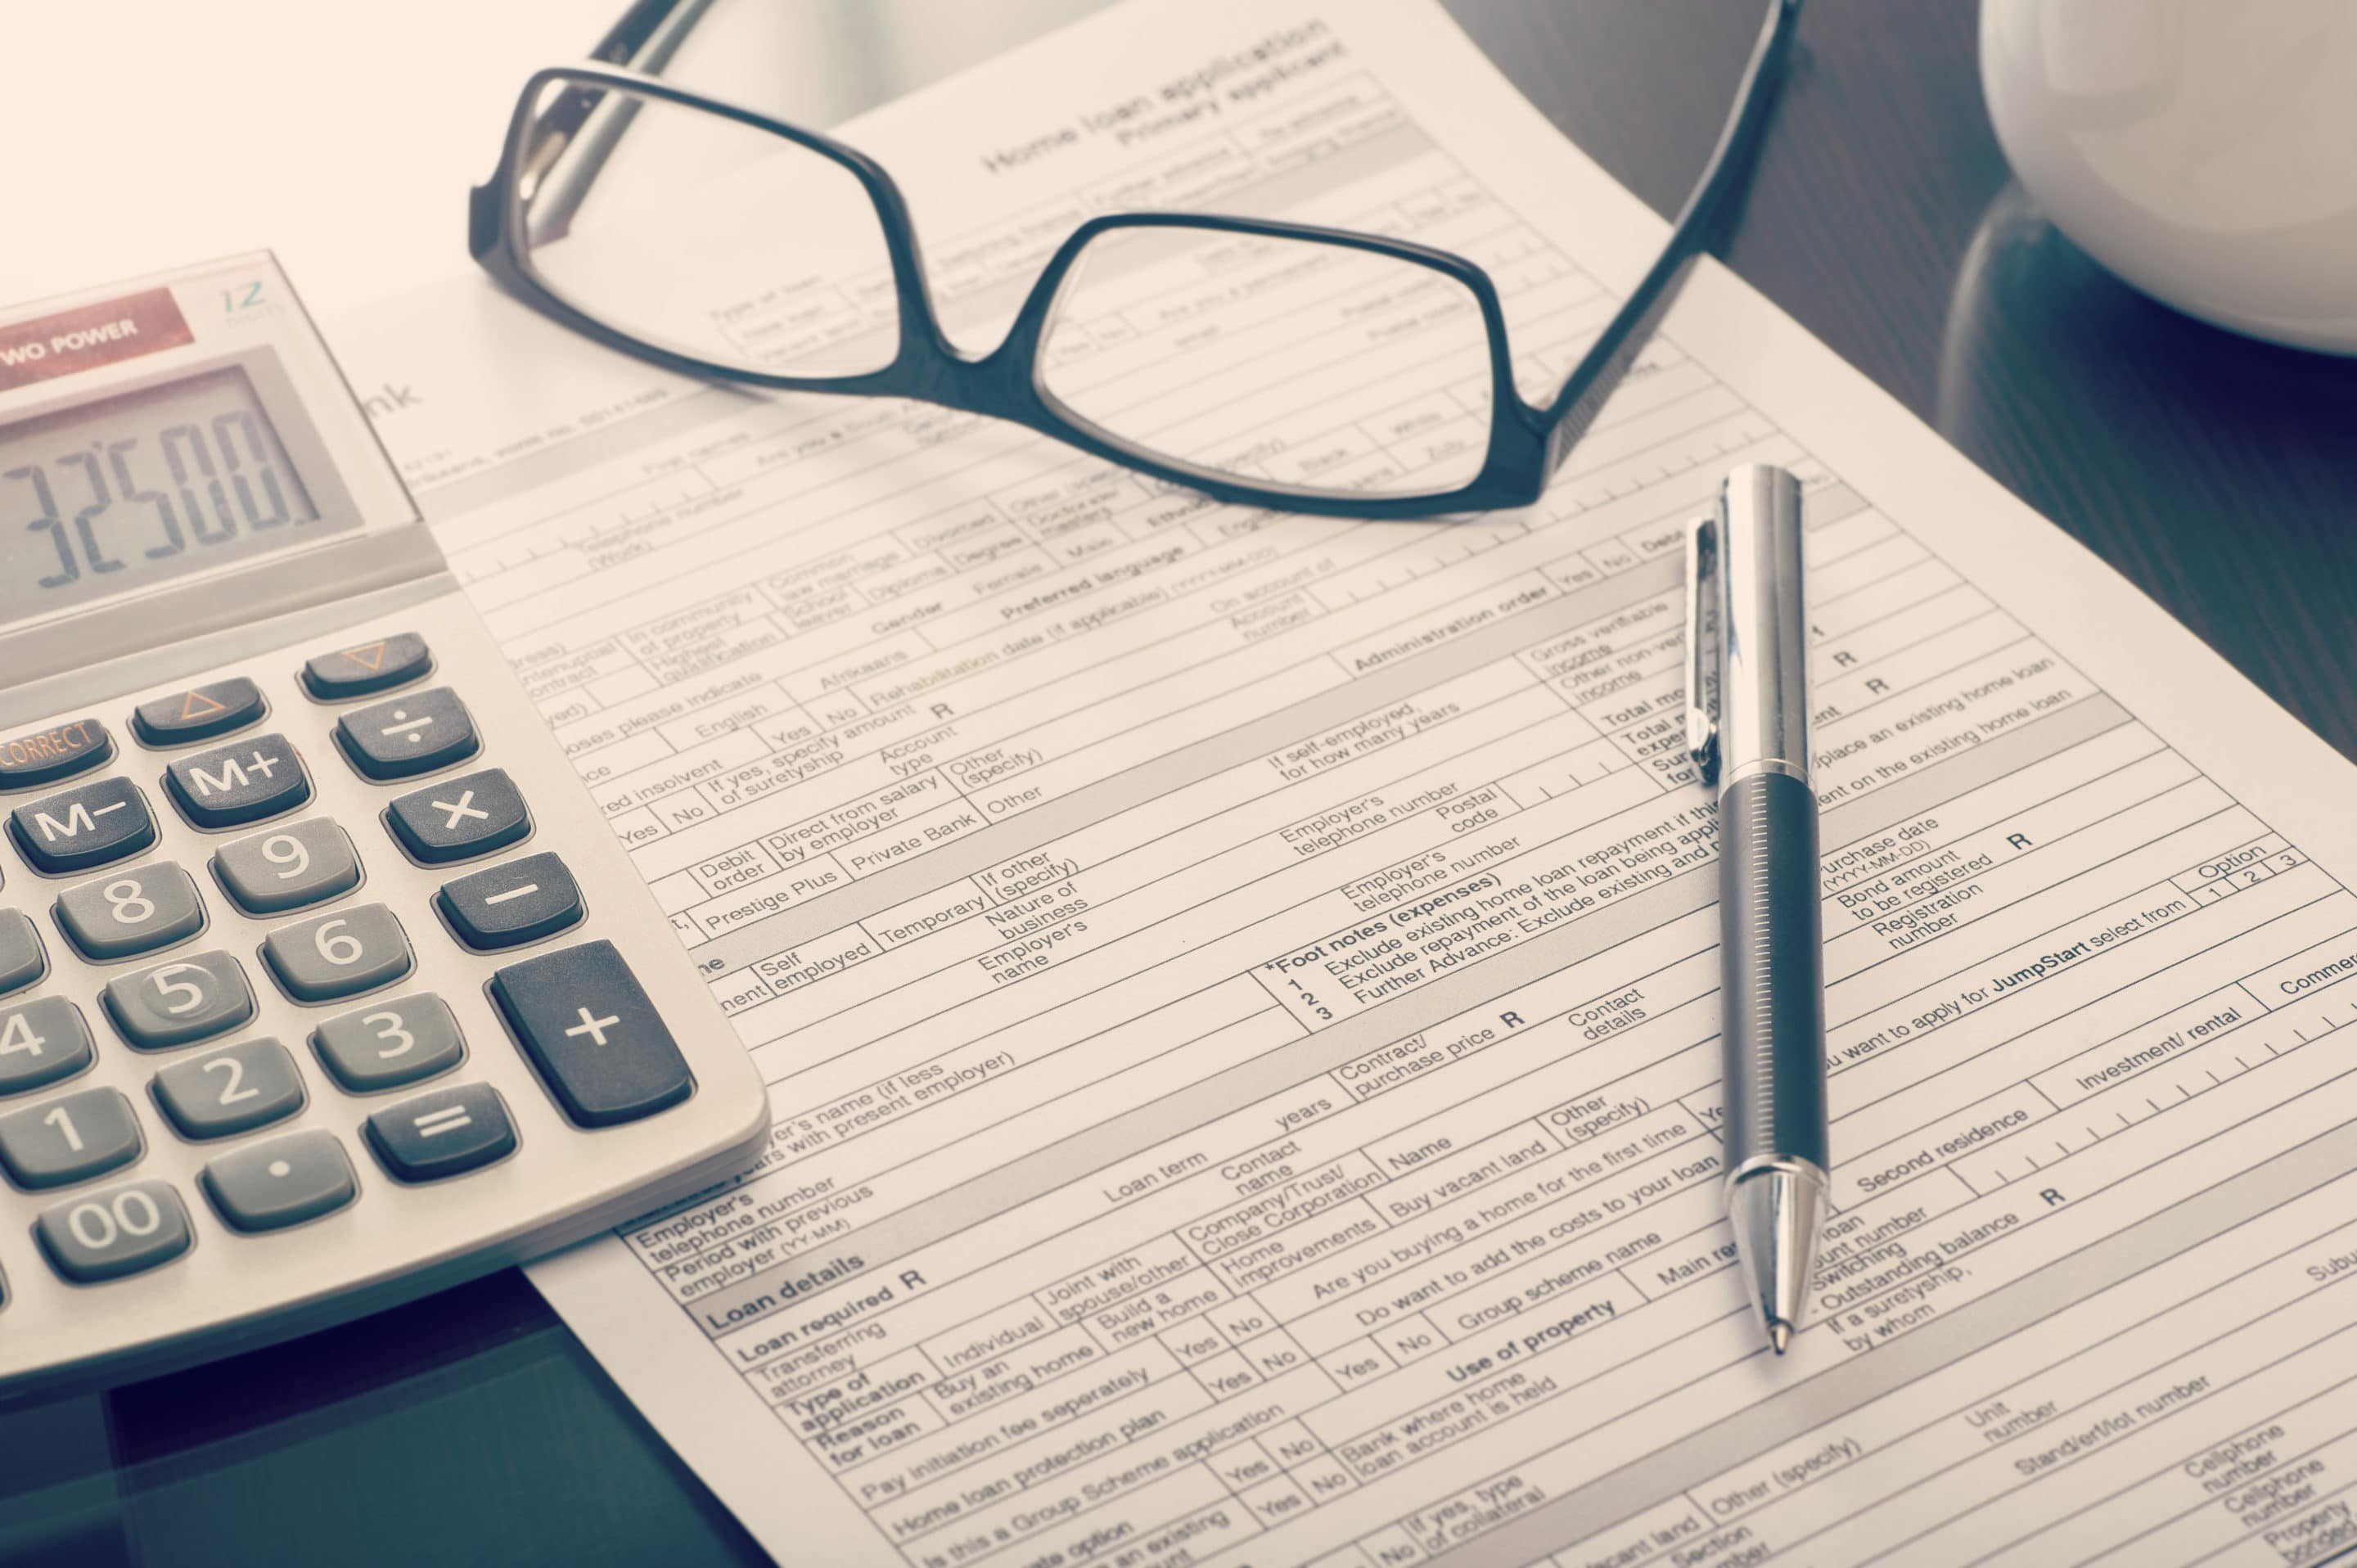 A commercial loan application on a table with a calculator, pen and glasses